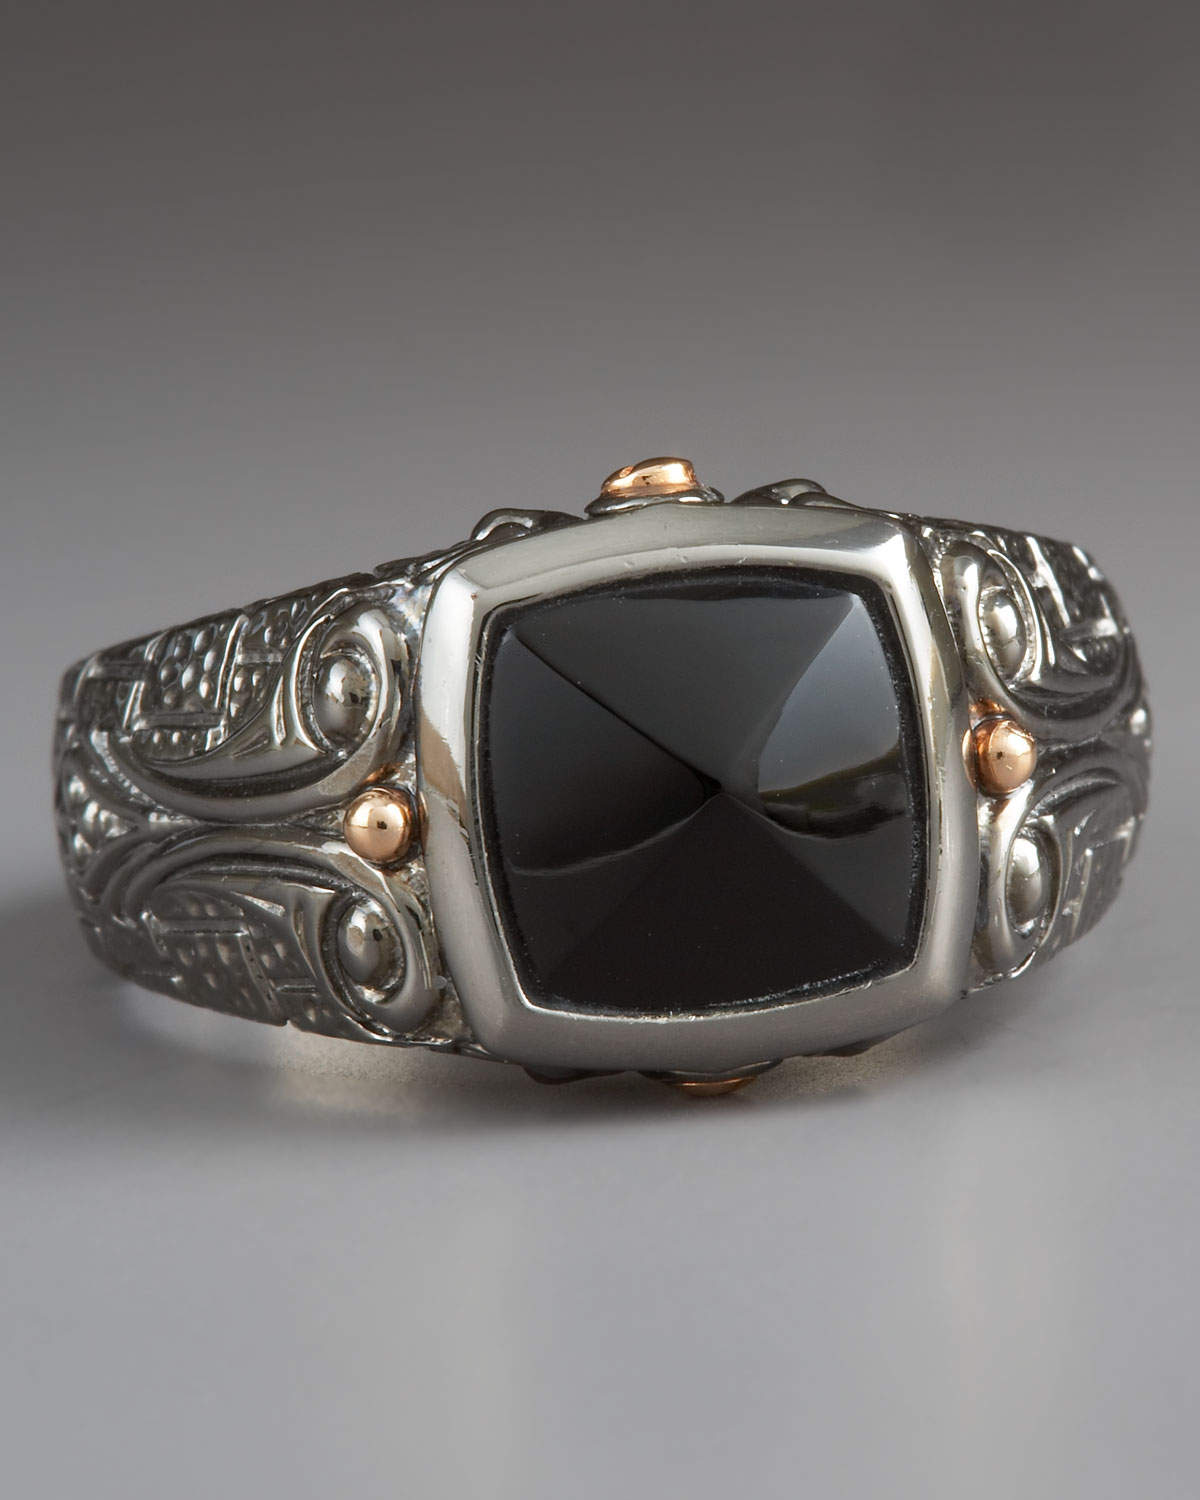 bbf32c58521 Lyst - Stephen Webster Lg Inlay Signet Ring Onyx in Black for Men